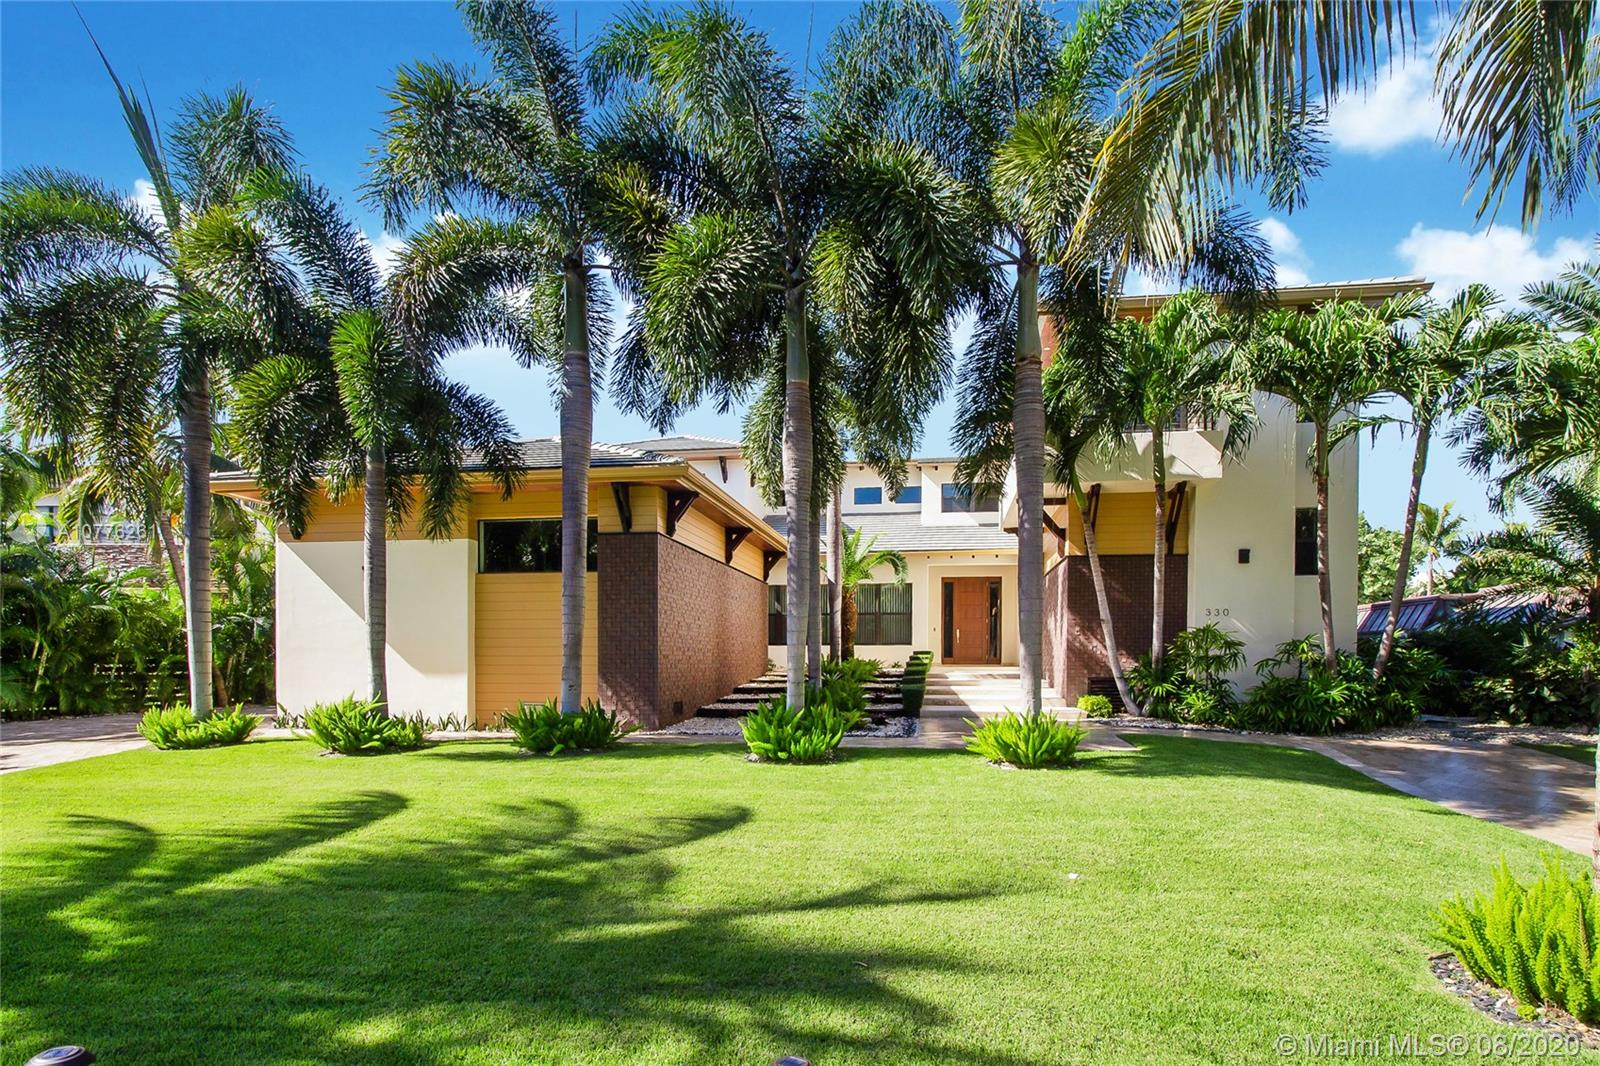 Property for sale at 330 Caribbean Rd, Key Biscayne,  Florida 33149